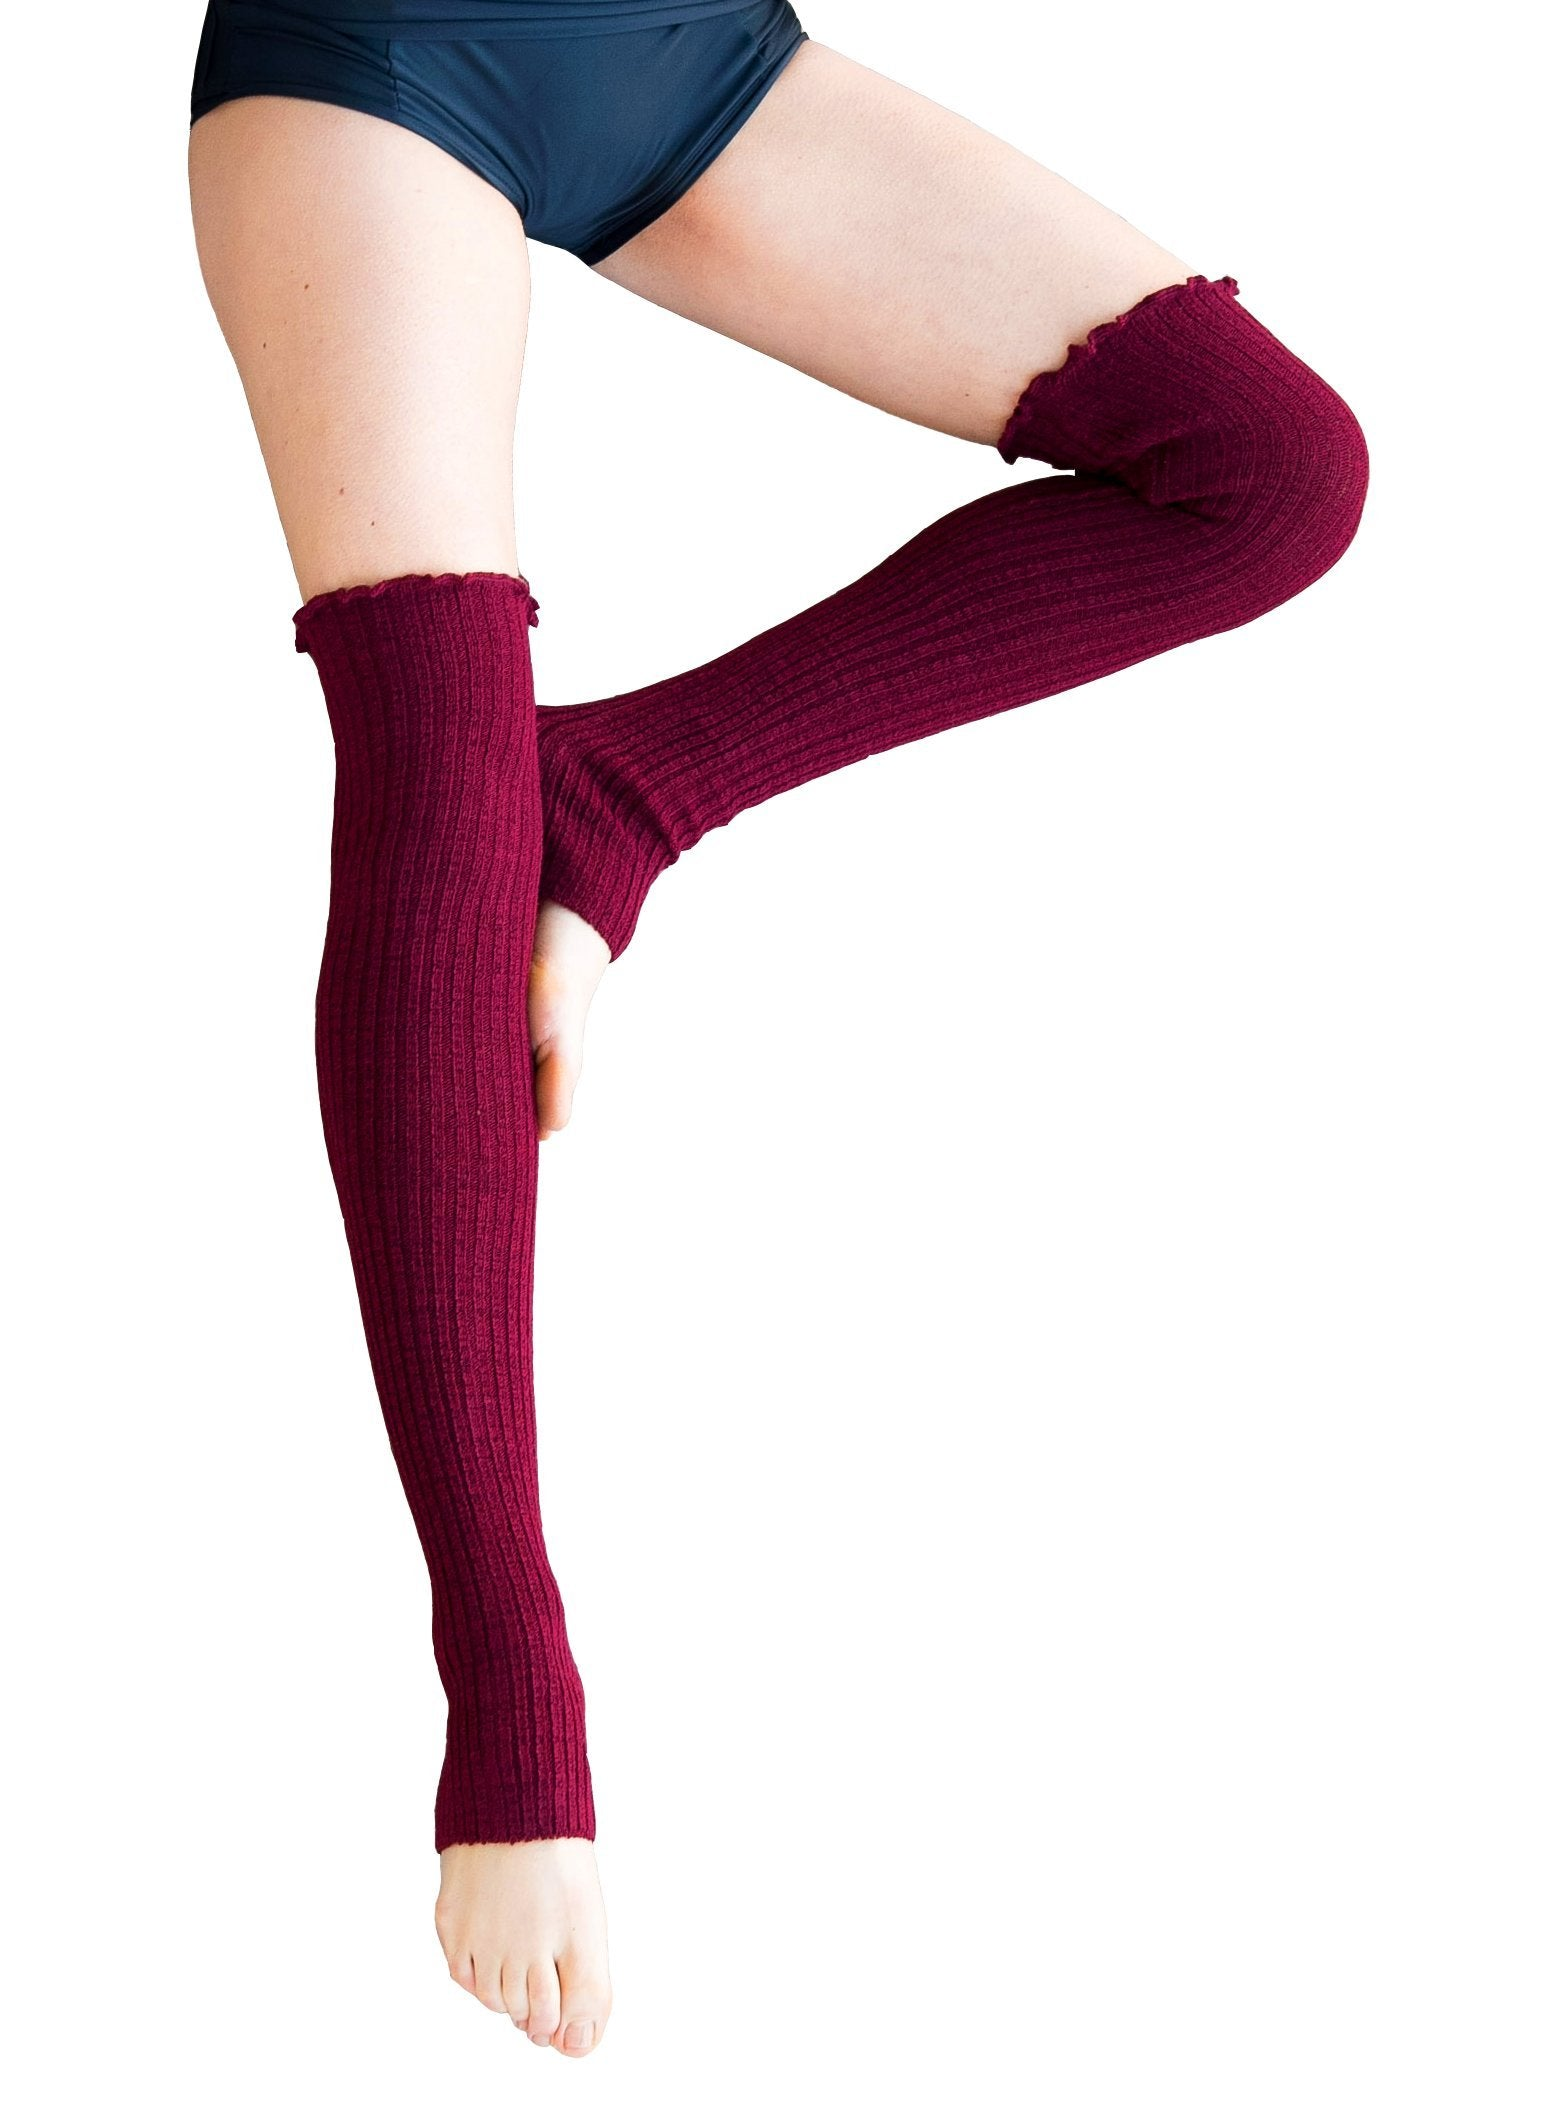 Leggings 62 cm - Bordeaux